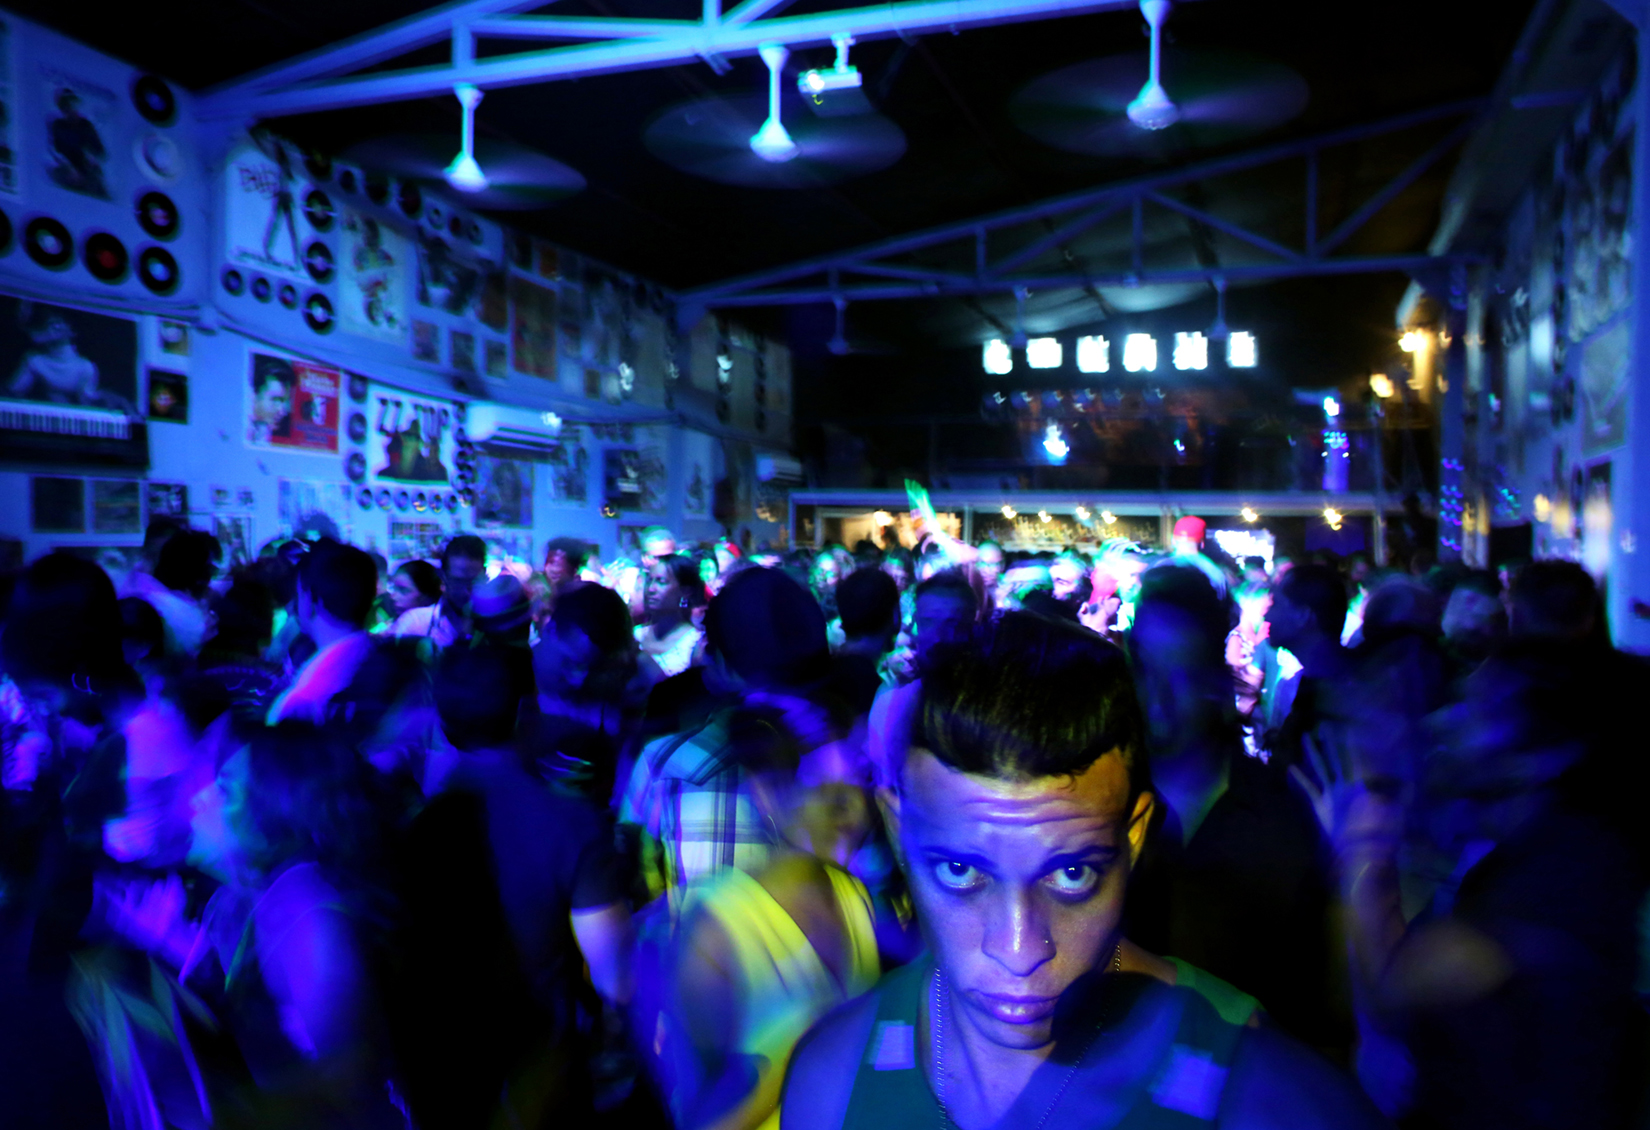 A room full of dancers mingle to the sounds of DJ Mike Polarni following a concert at Fabrica de Arte, in the Vedado neighborhood of Havana, Cuba, on April 25, 2014. Fabrica de Arte, which opened in 2014 with the backing of the Ministry of Culture, is an industrial factory turned performance space where established and unknown musicians, painters, photographers, and playwrights alike show their work. While the more open era of Raúl Castro has made it easier to toe the line of artistic self-expression, artists who cross it altogether risk losing the support of government-controlled galleries that display their works.